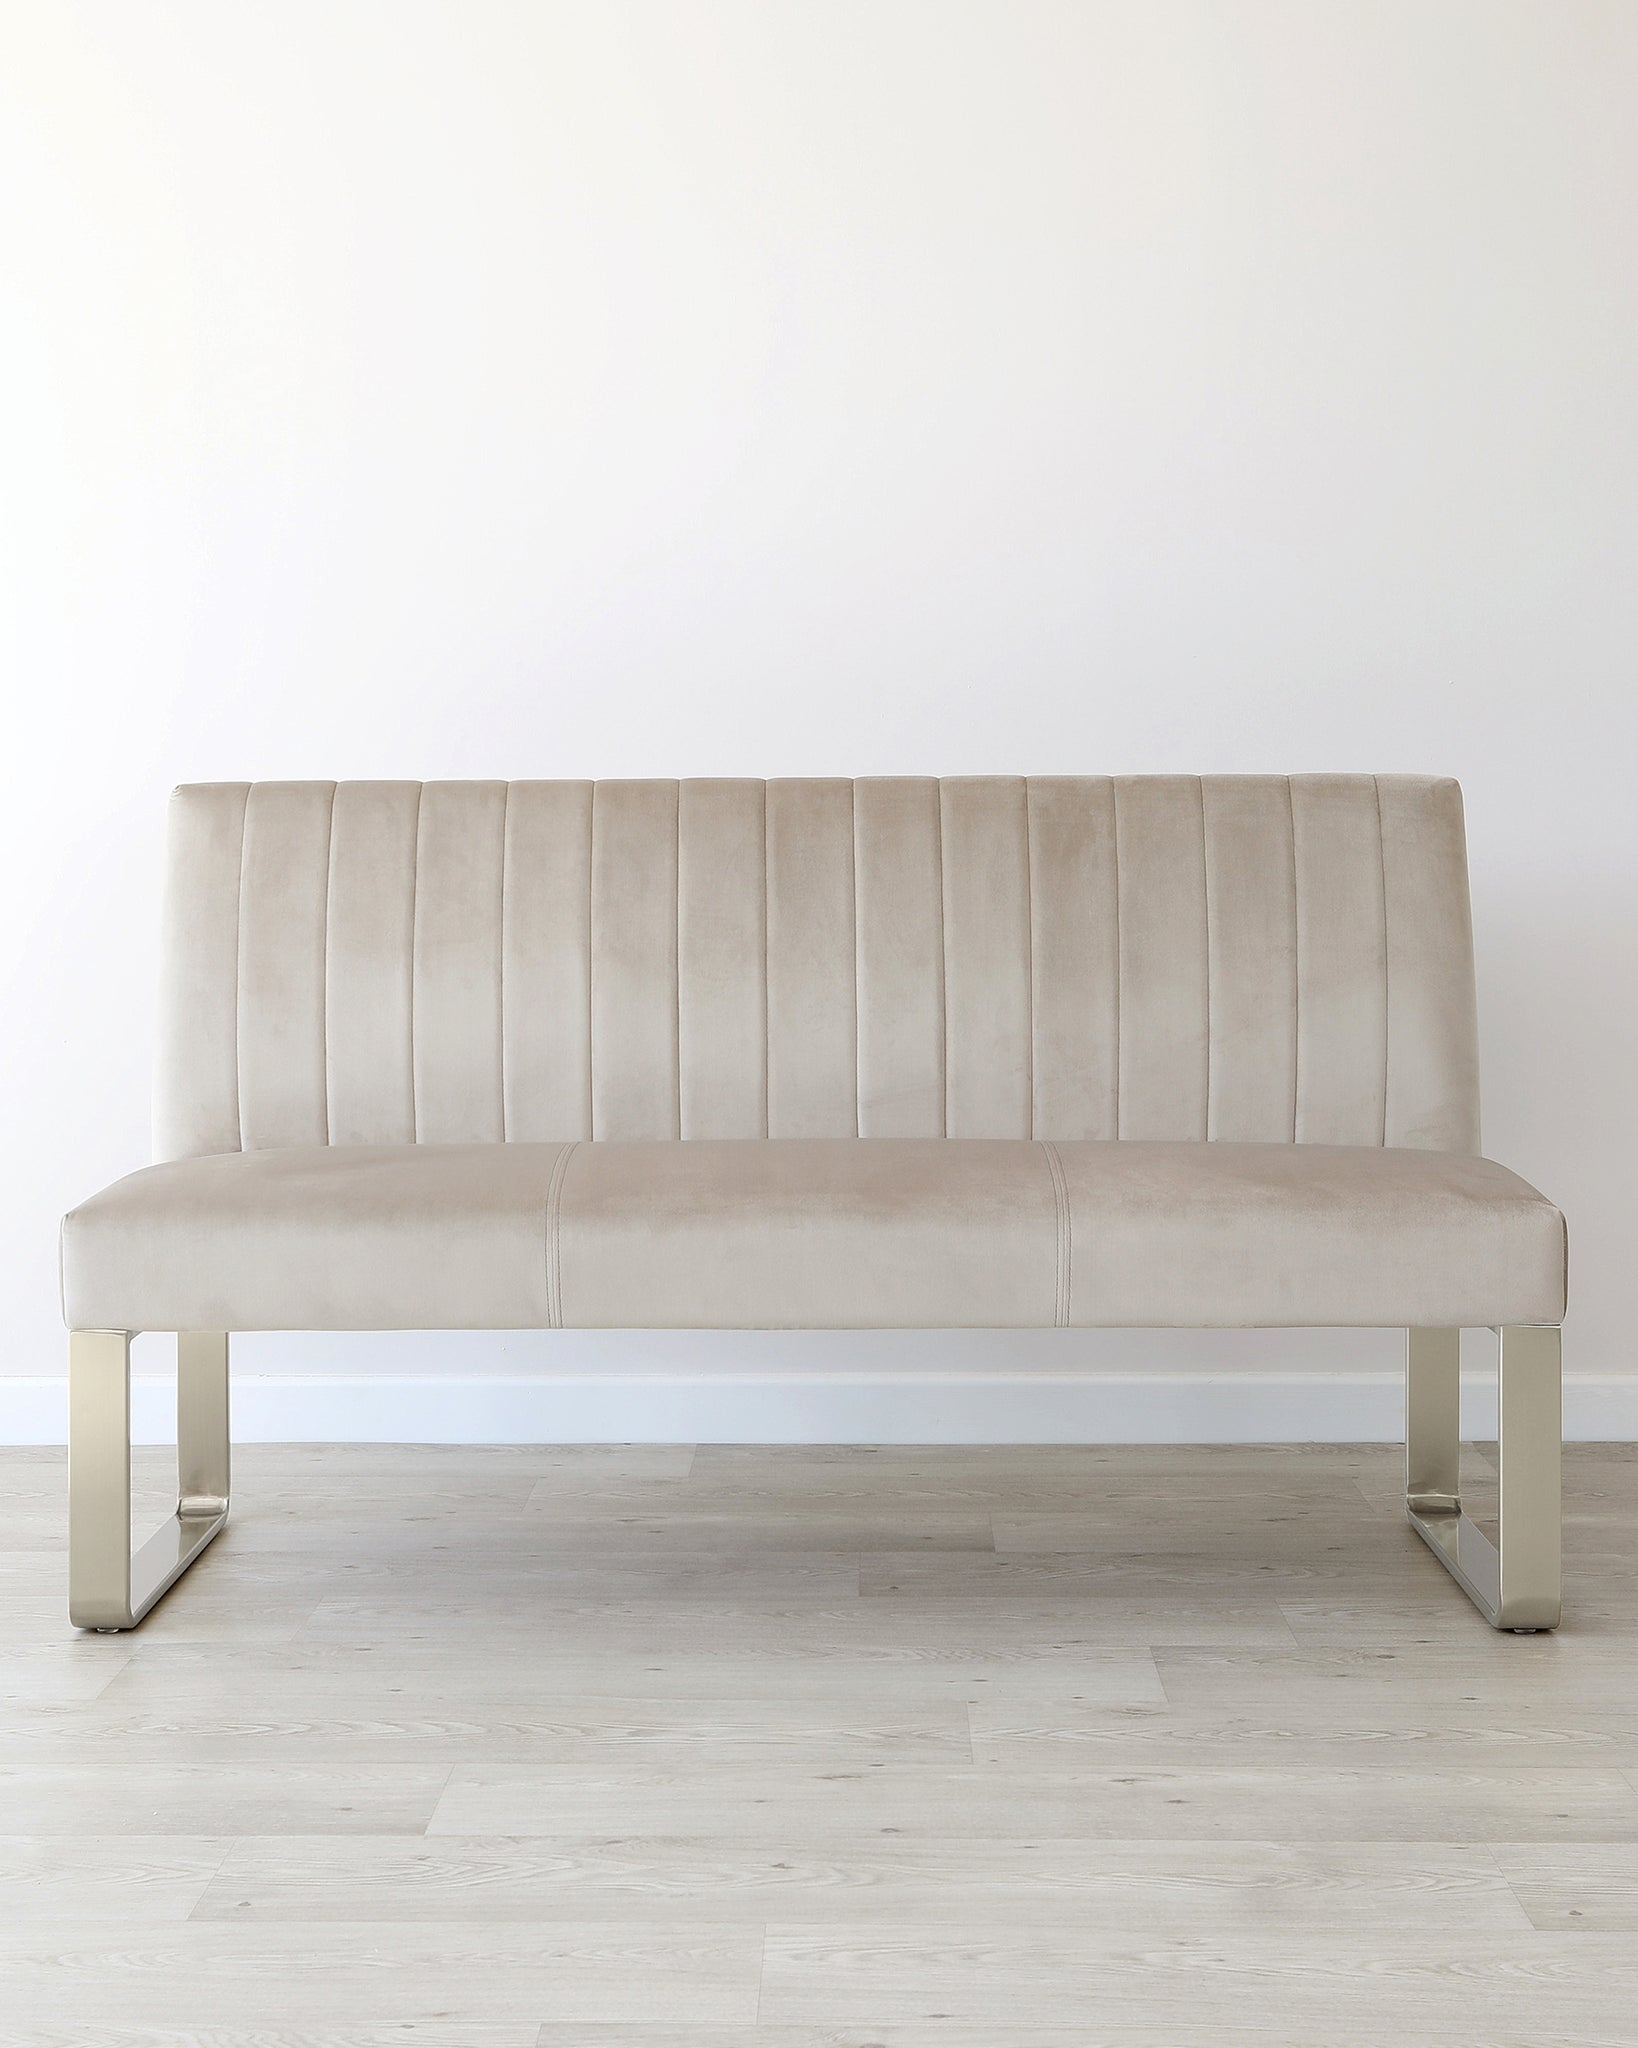 Ophelia 3 Seater Champagne Velvet & Stainless Steel Bench With Backrest